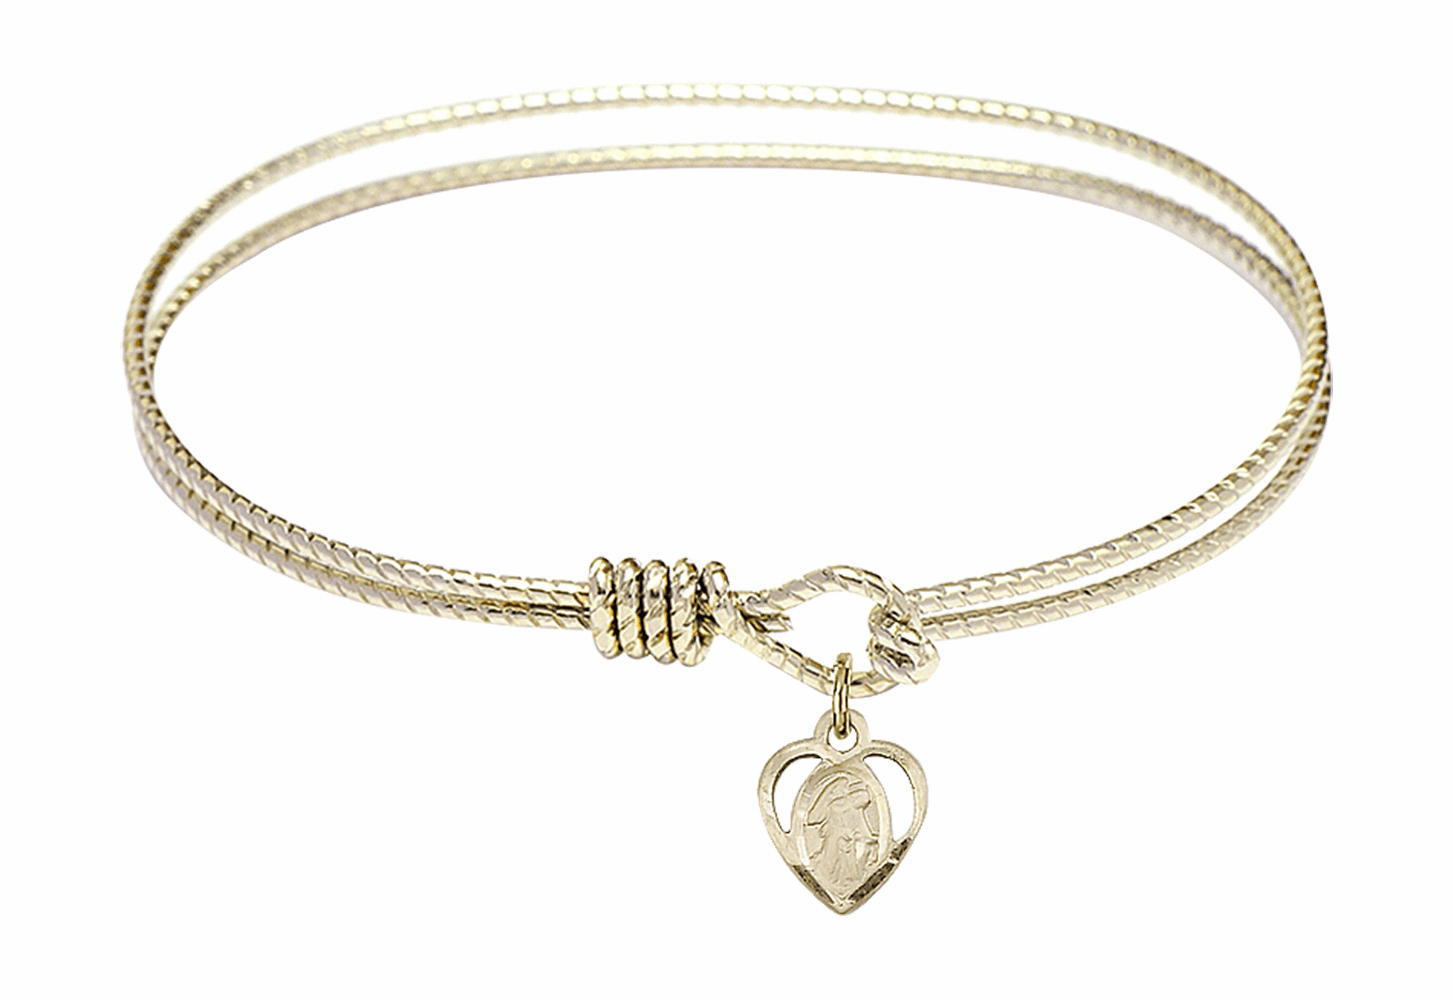 Round Twist Eye Hook Bangle Bracelet w/Guardian Angel Heart Charm by Bliss Mfg